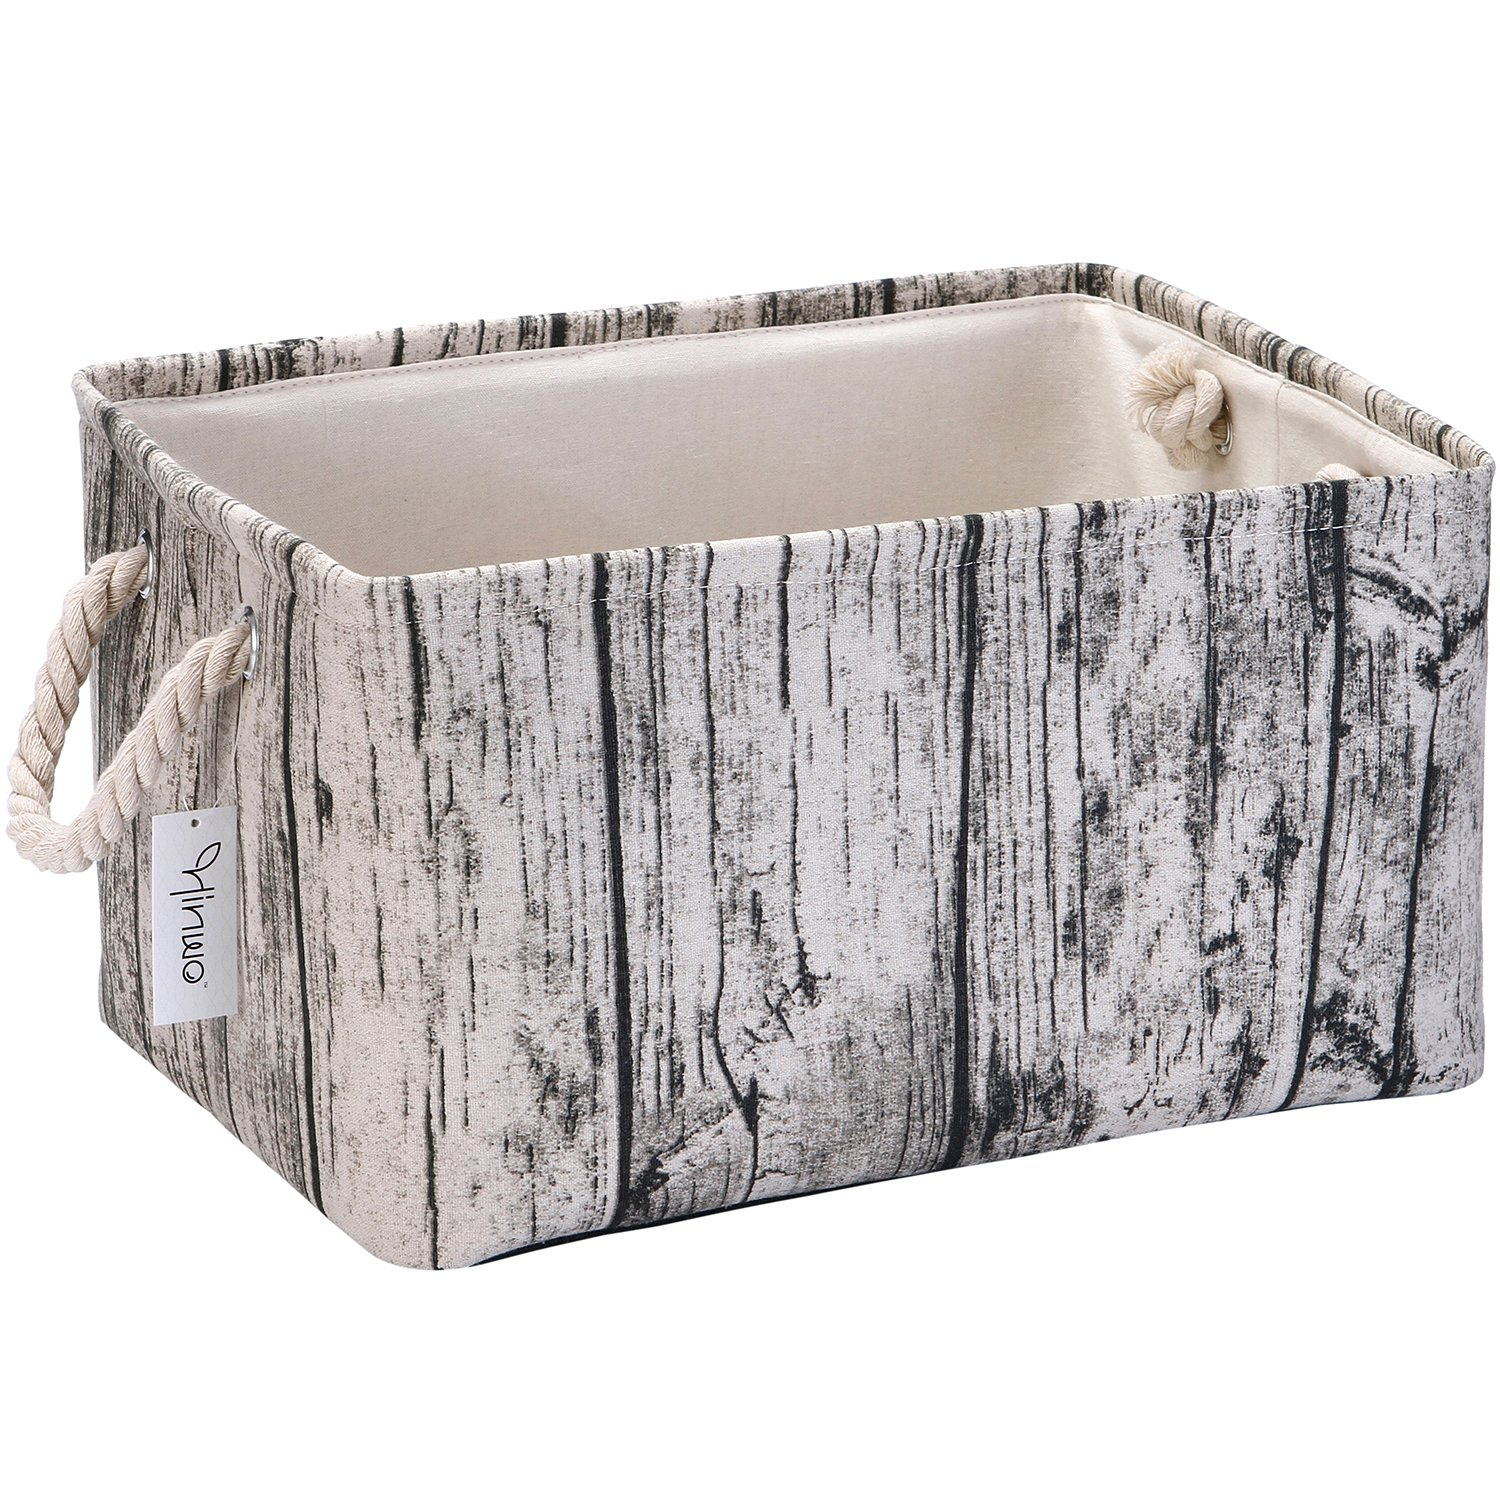 Hinwo 34L Stylish Tree Stump Design Wood Grain Storage Bin Basket Rectangle Canvas Fabric Toy Chest Organizer with Rope Handles for Kids Toys Clothes Nursery Playroom and Shelves, 17 x 13.5 x 9.1""